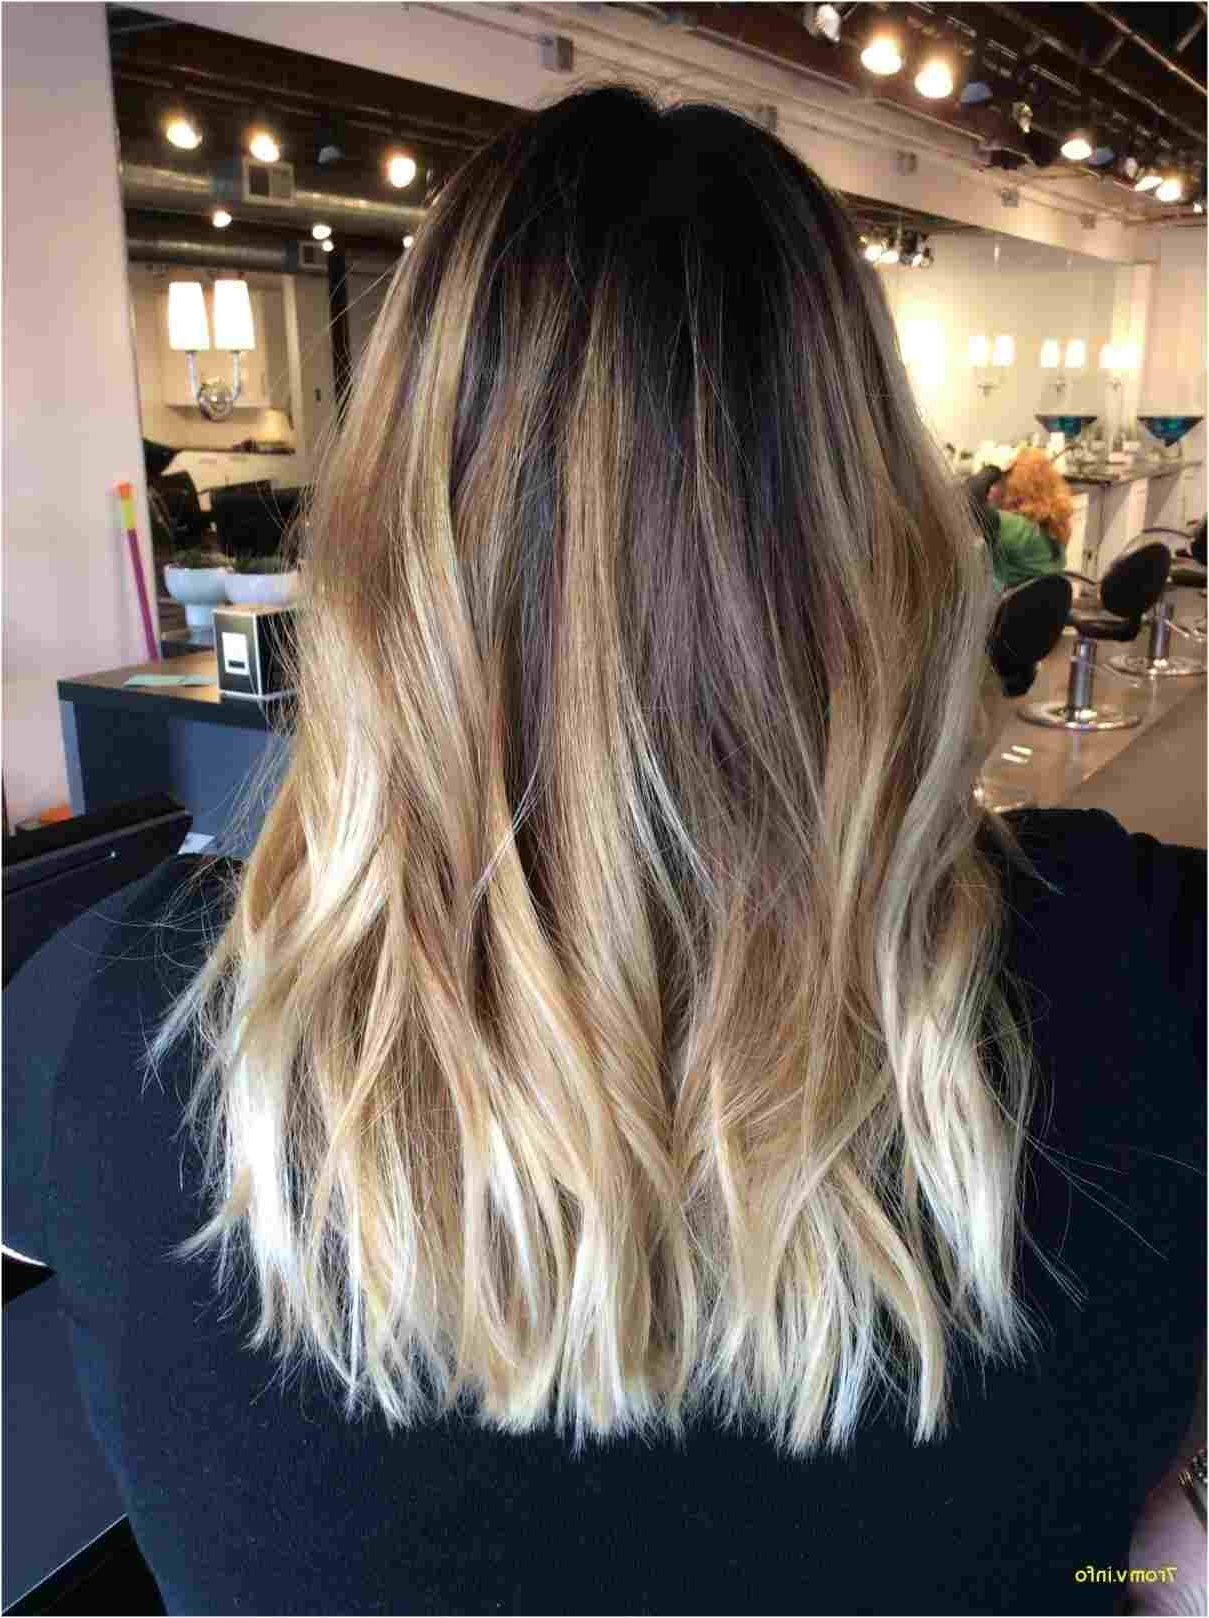 Styles Fashionable Rhomdowebsite Cool Icy Ashy Balayage Highlights With Regard To Famous Icy Ombre Waves Blonde Hairstyles (View 18 of 20)